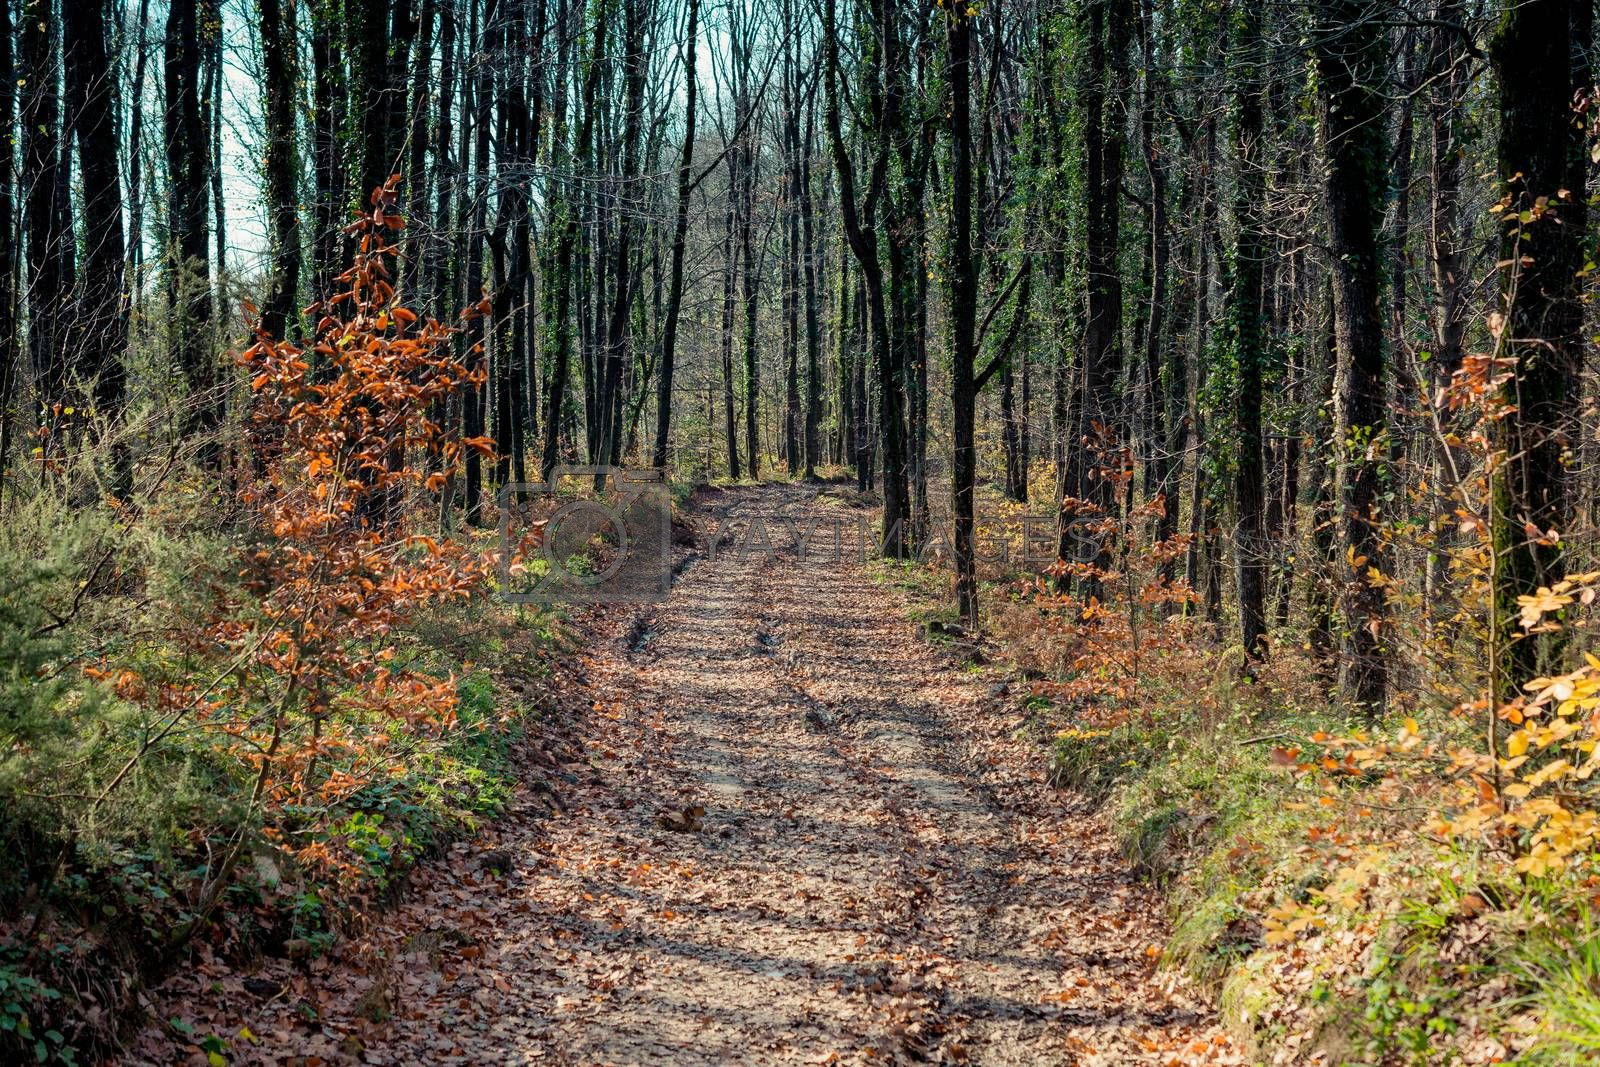 Hiking path in beautiful woods landscape in forest